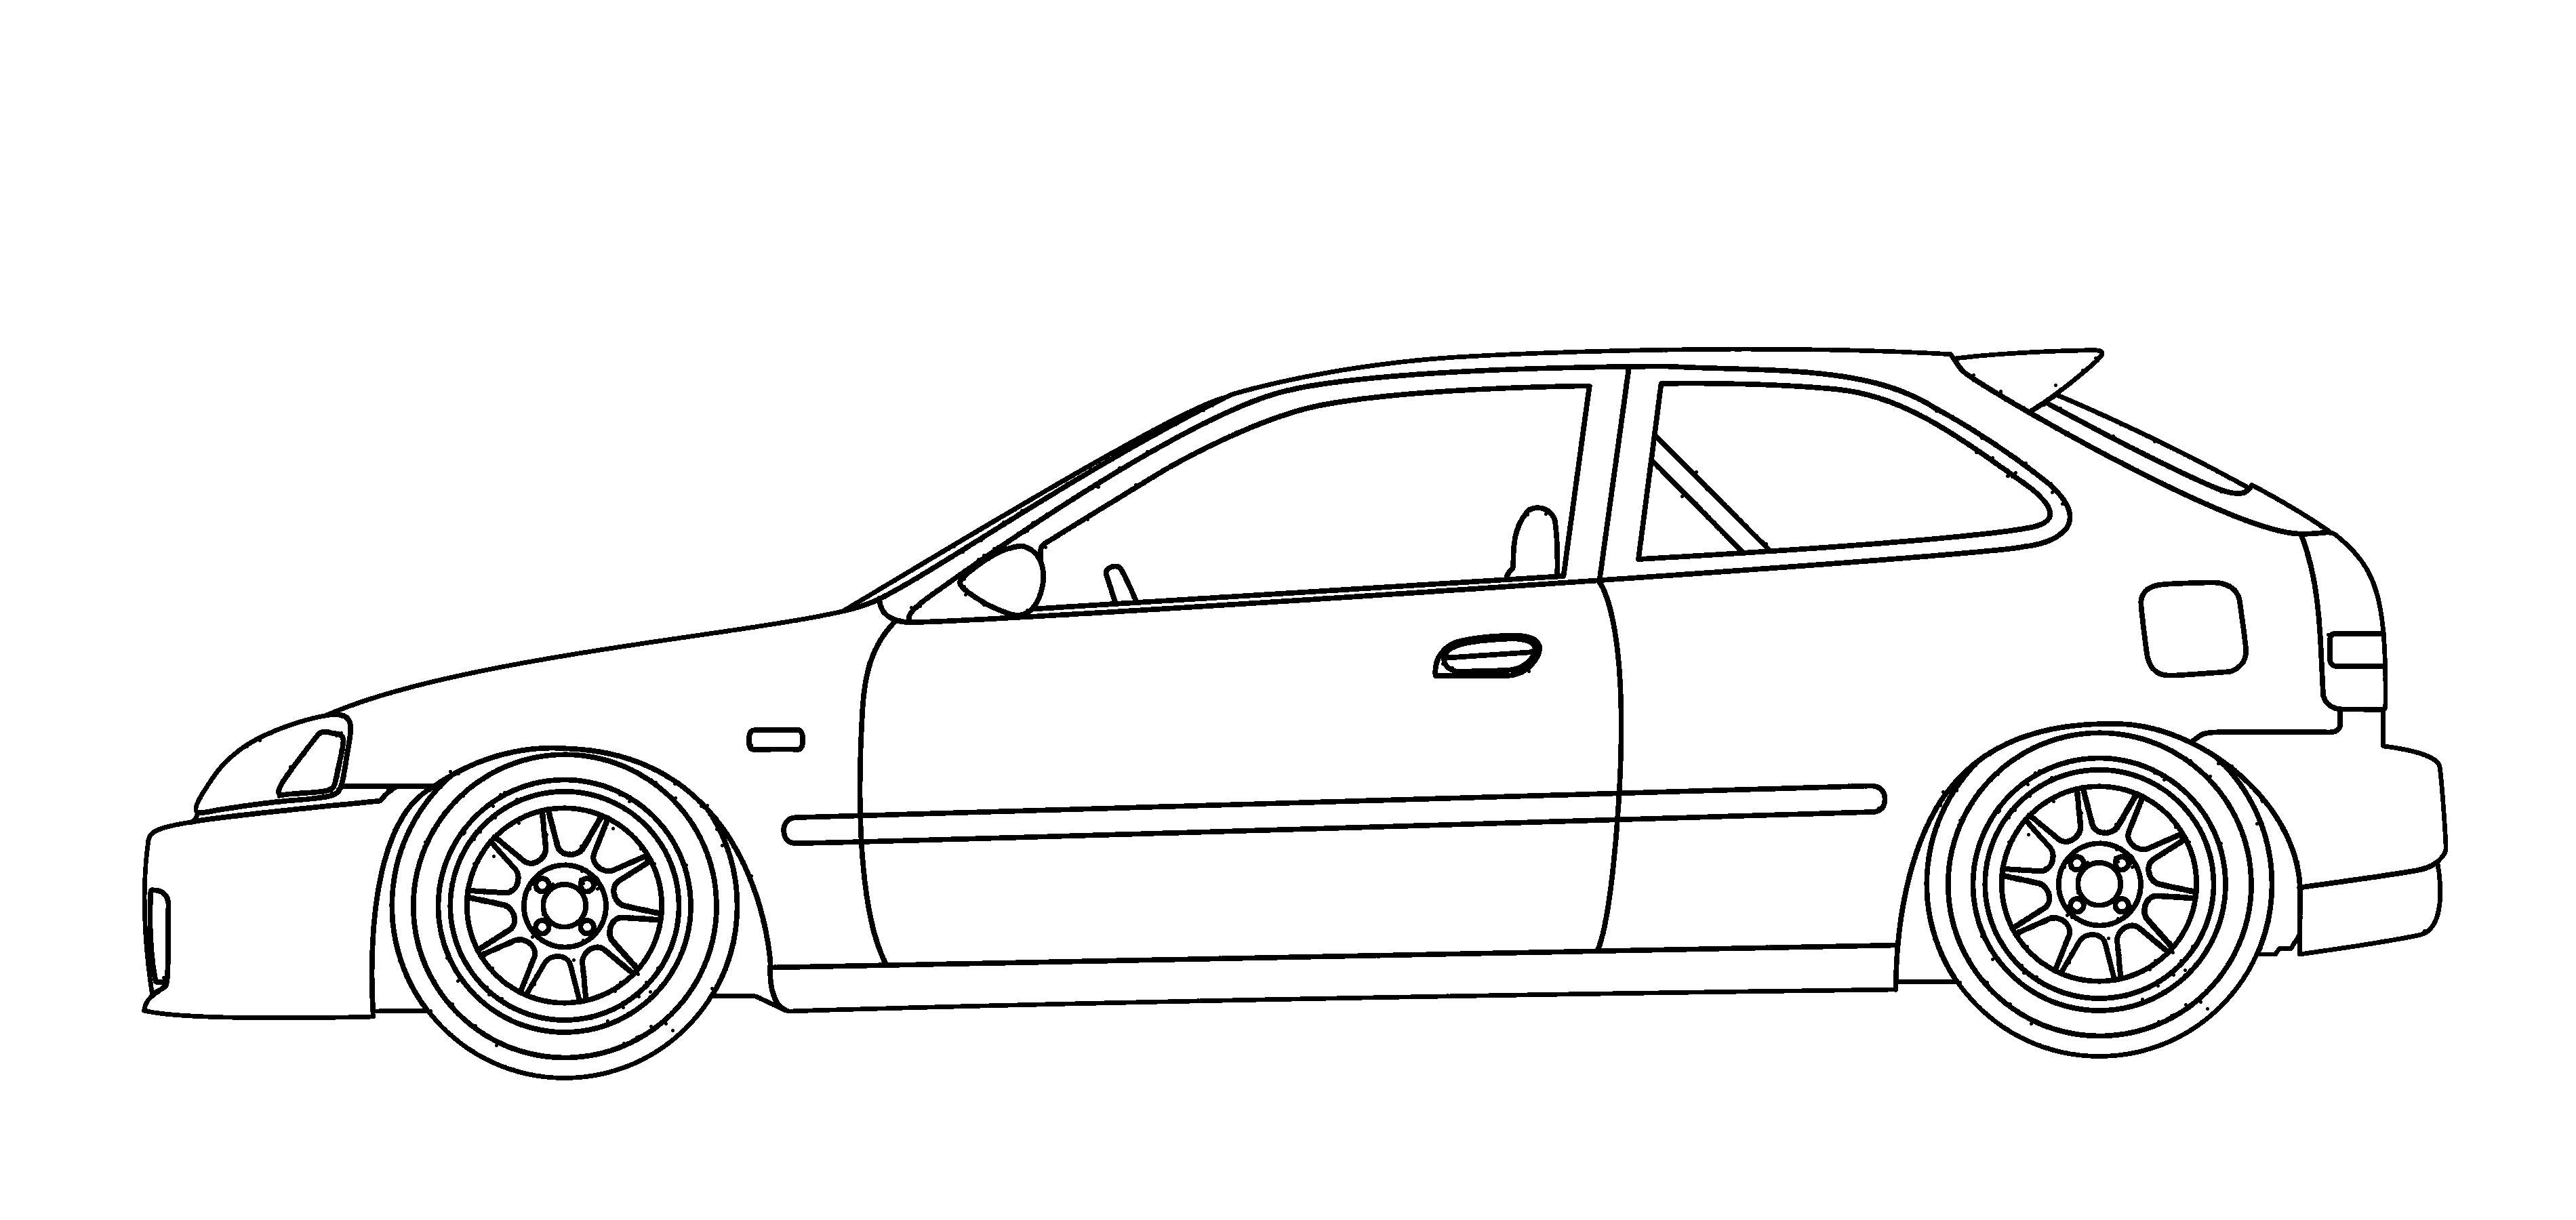 Rx7 drawing ricer car. Honda civic ek hondas